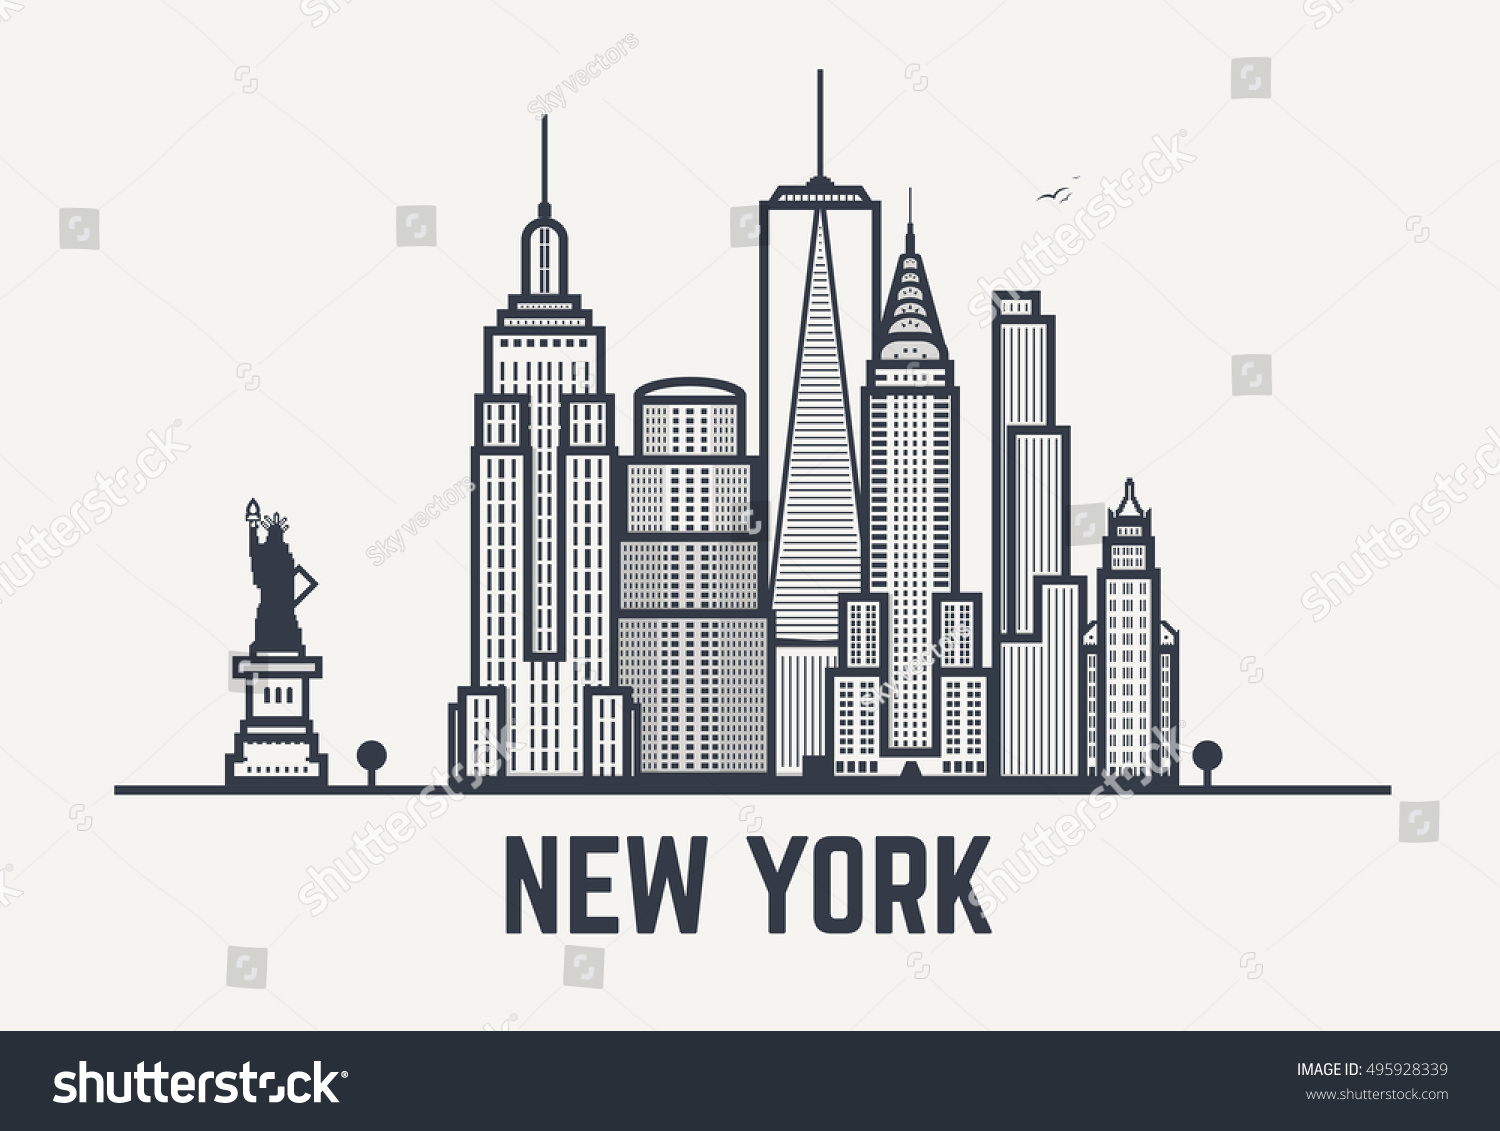 Line Drawing New York City Skyline : New york city architecture skyline silhouette stock vector